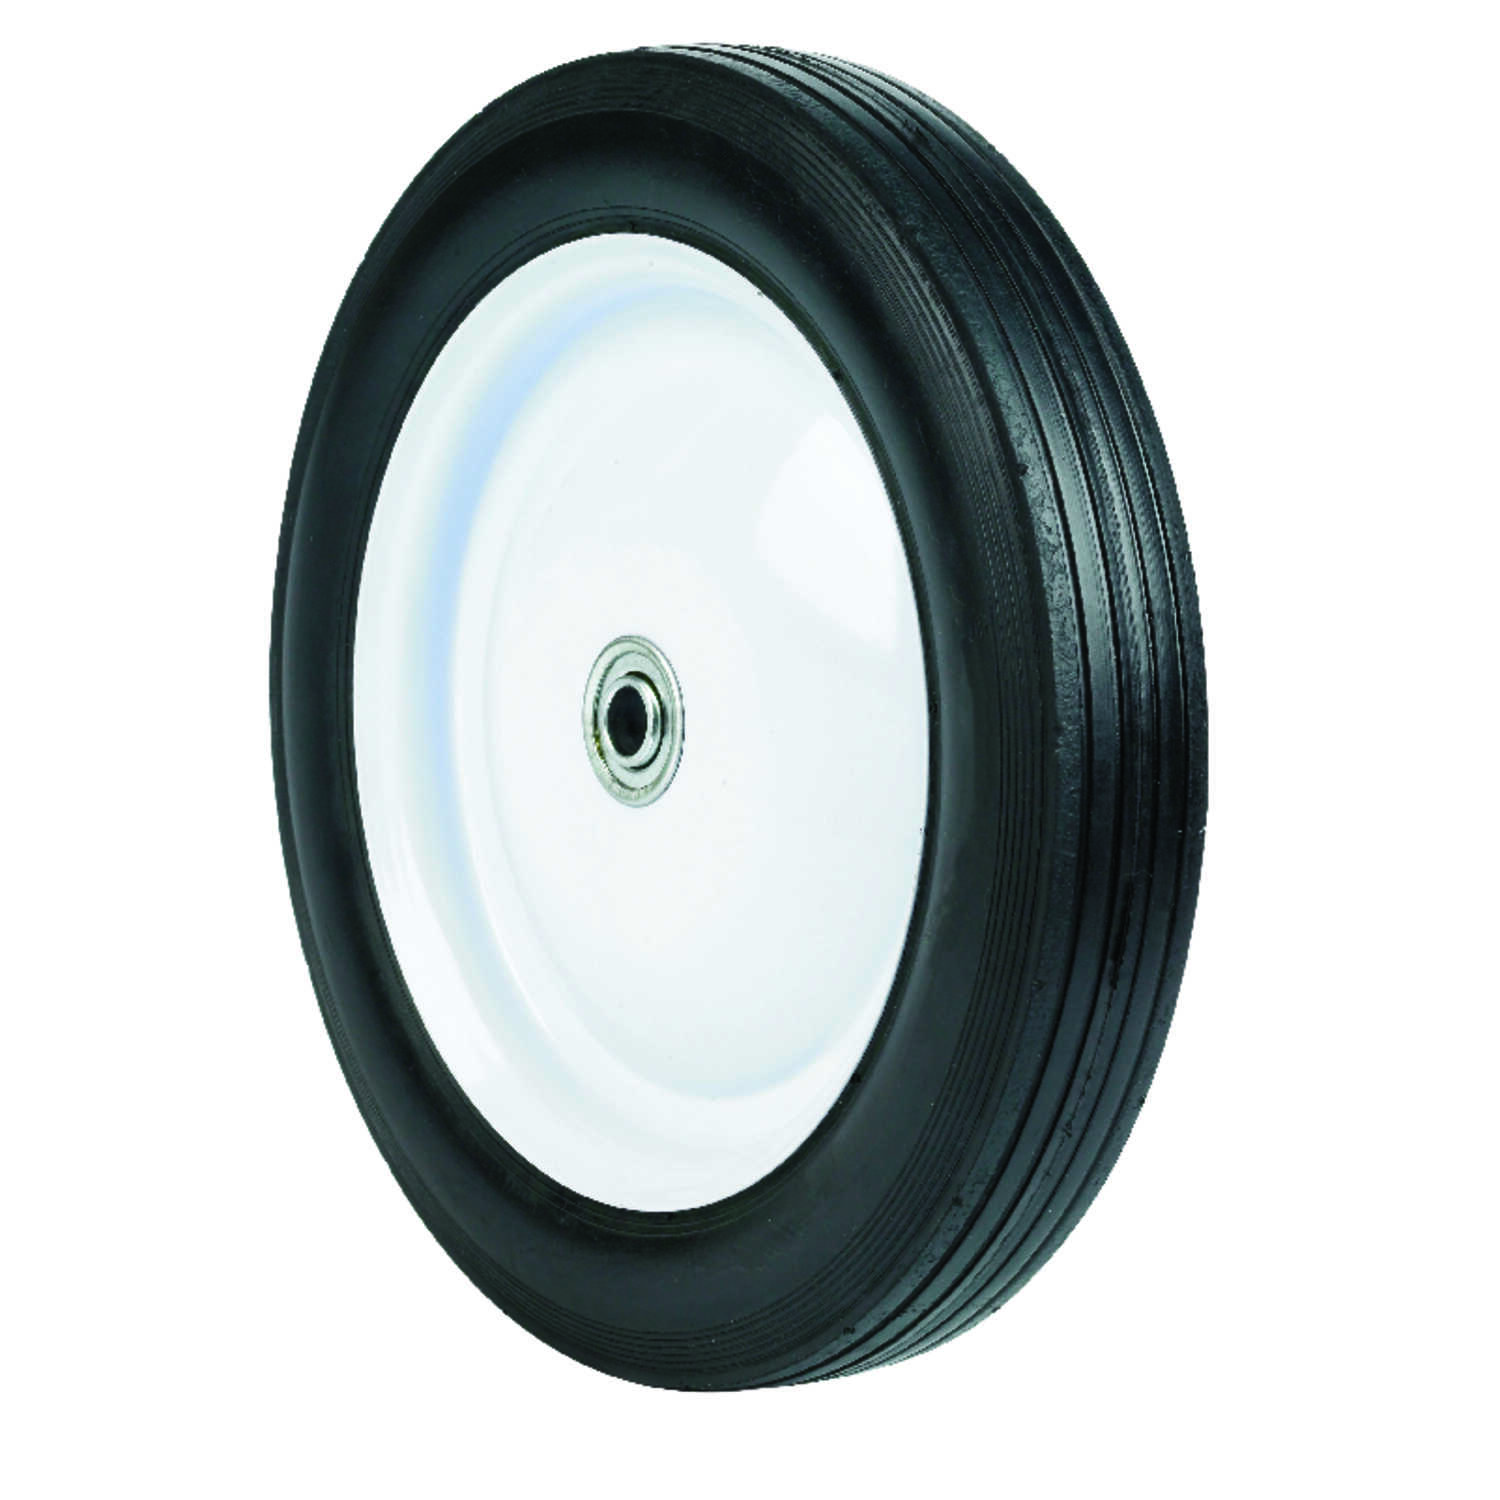 Arnold  1.75 in. W x 10 in. Dia. Steel  Lawn Mower Replacement Wheel  80 lb.